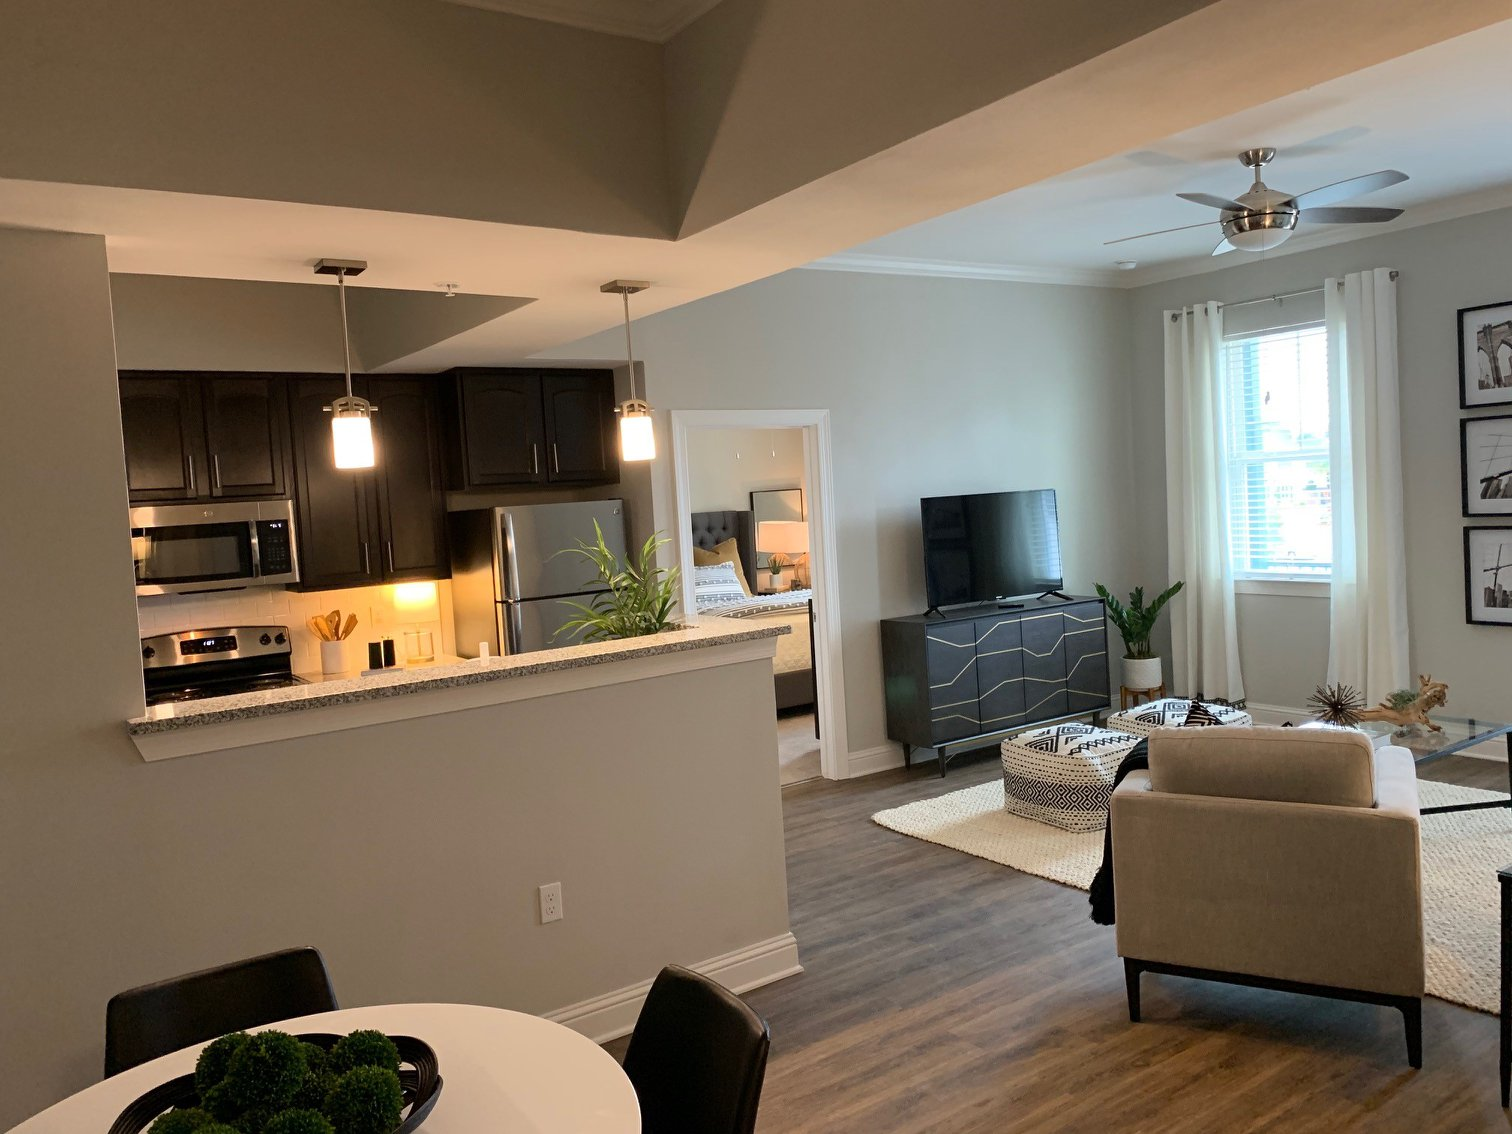 Spacious Apartments for Rent at Elan at Terra Bella Apartments in Covington, Louisiana